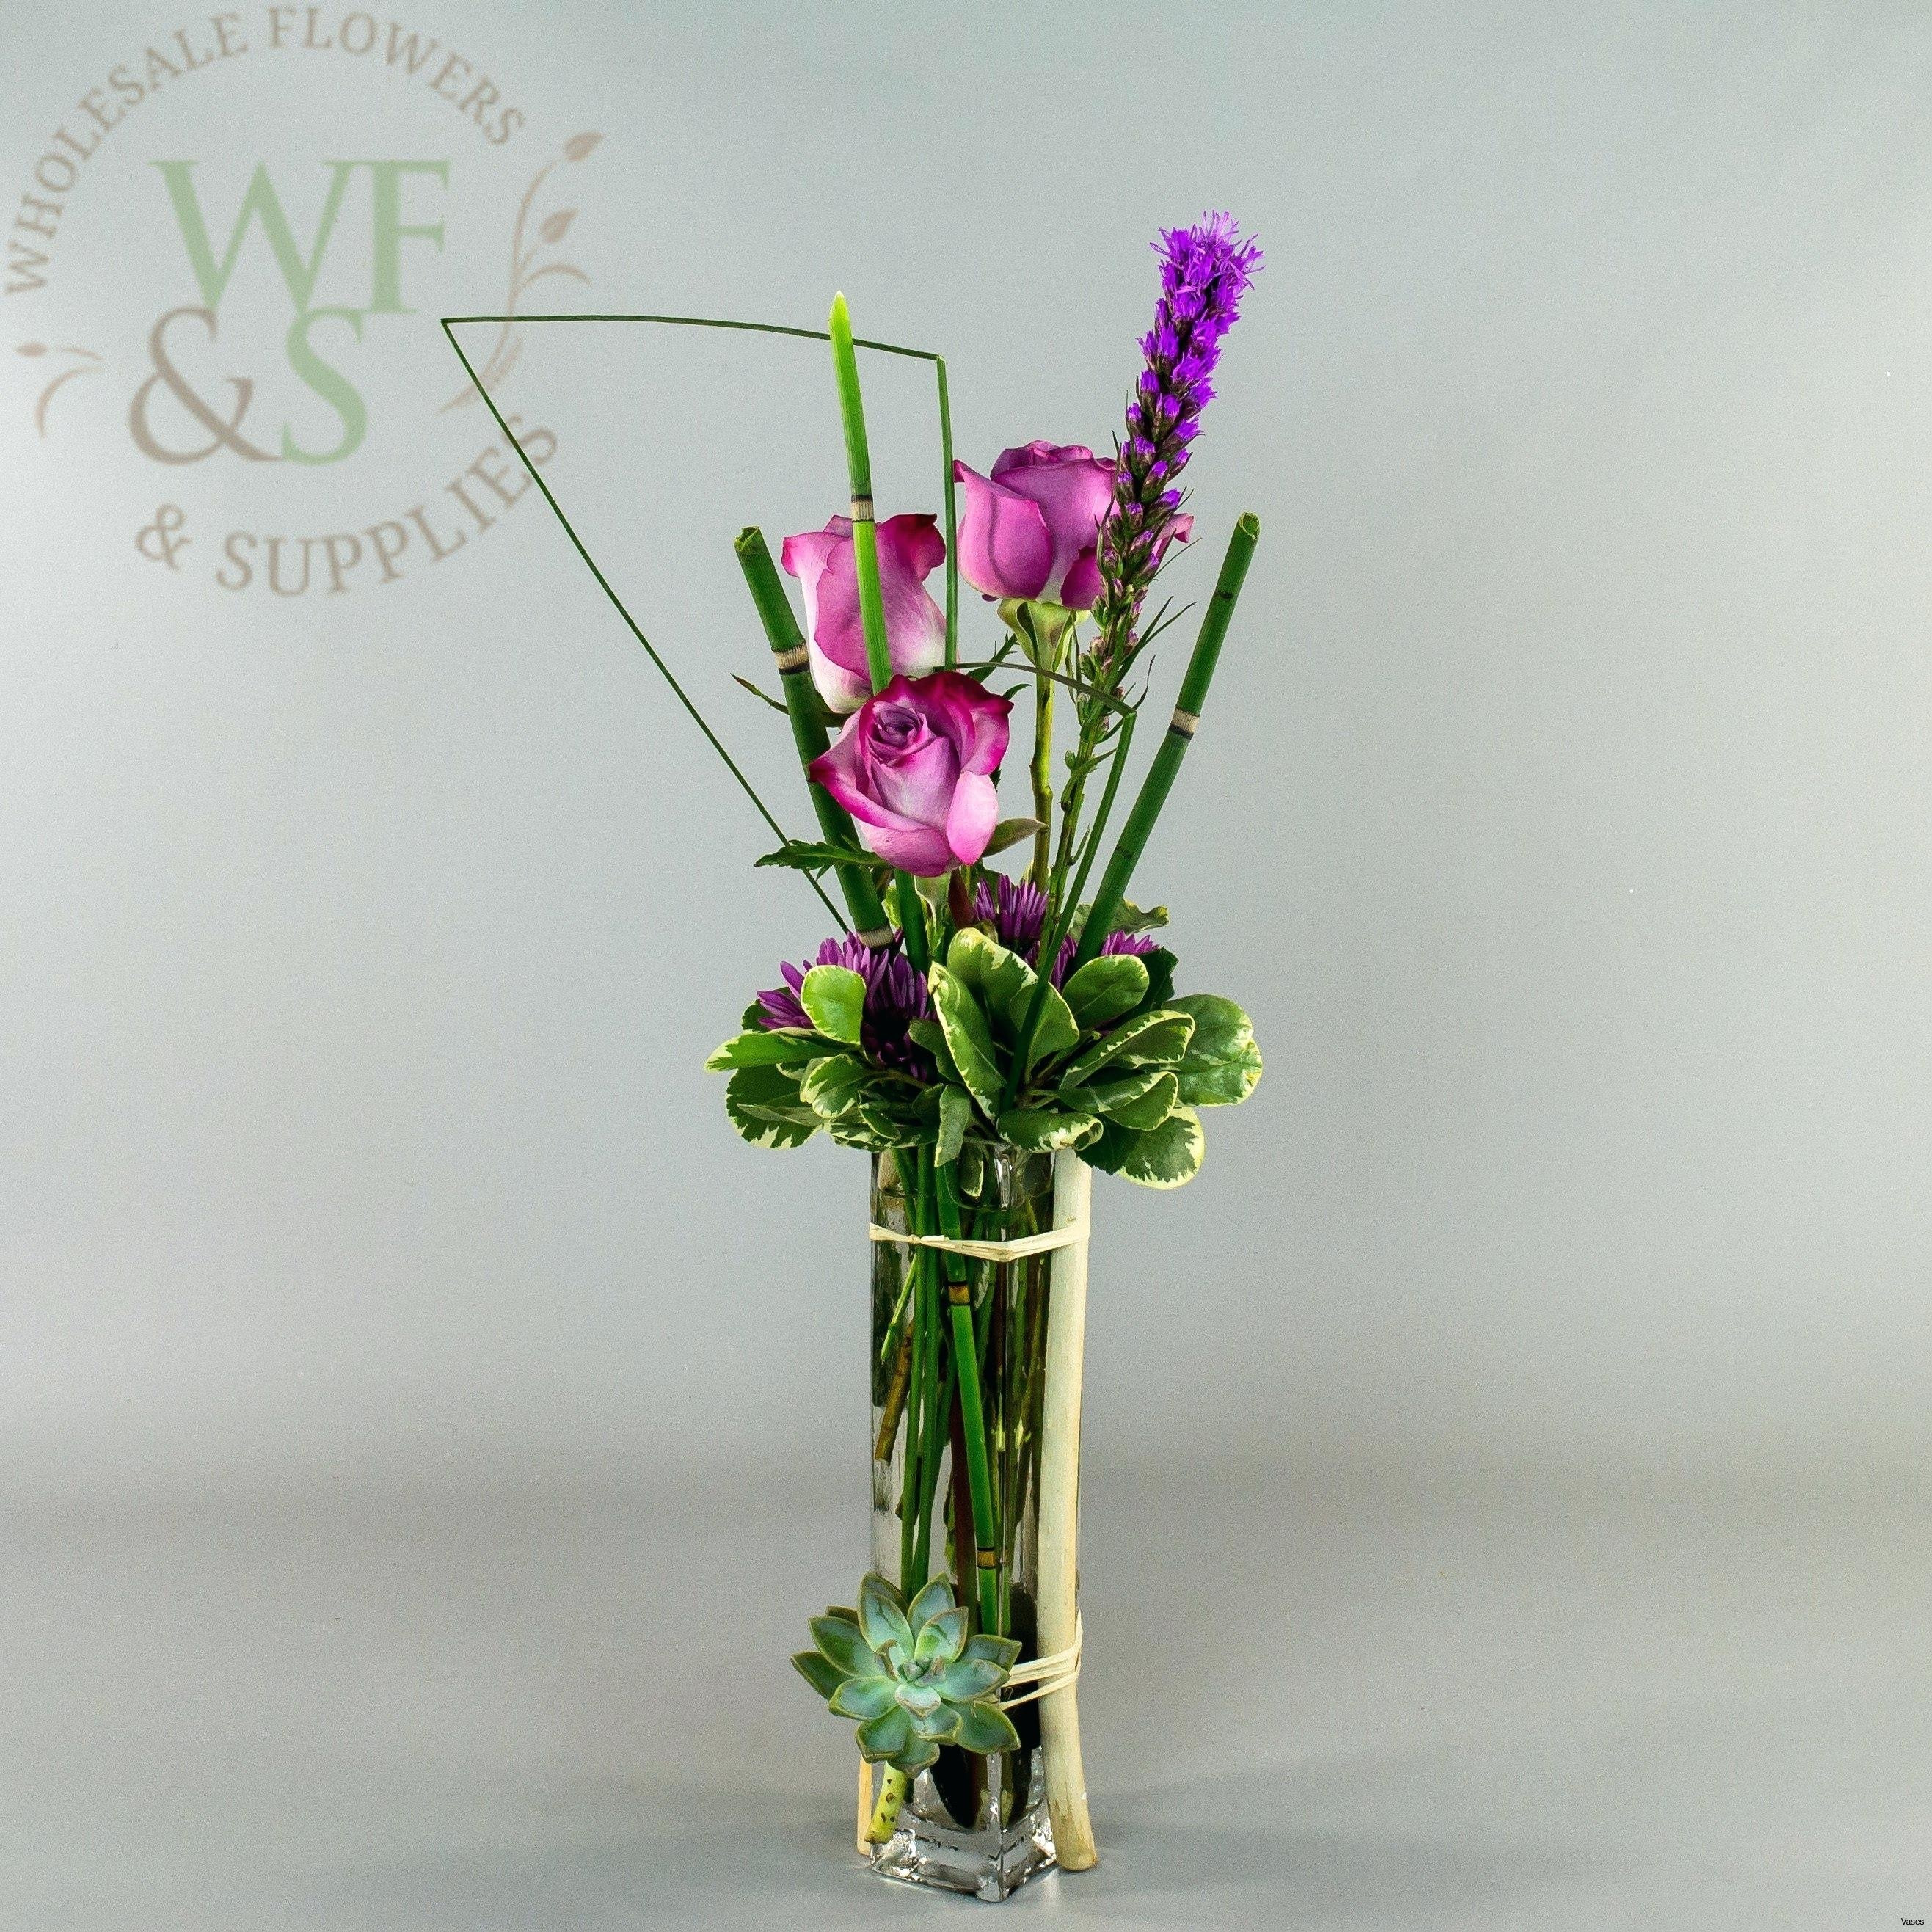 ikea glass flower vases of flower picture ikea new wholesale cheap vases toronto square wedding with download image